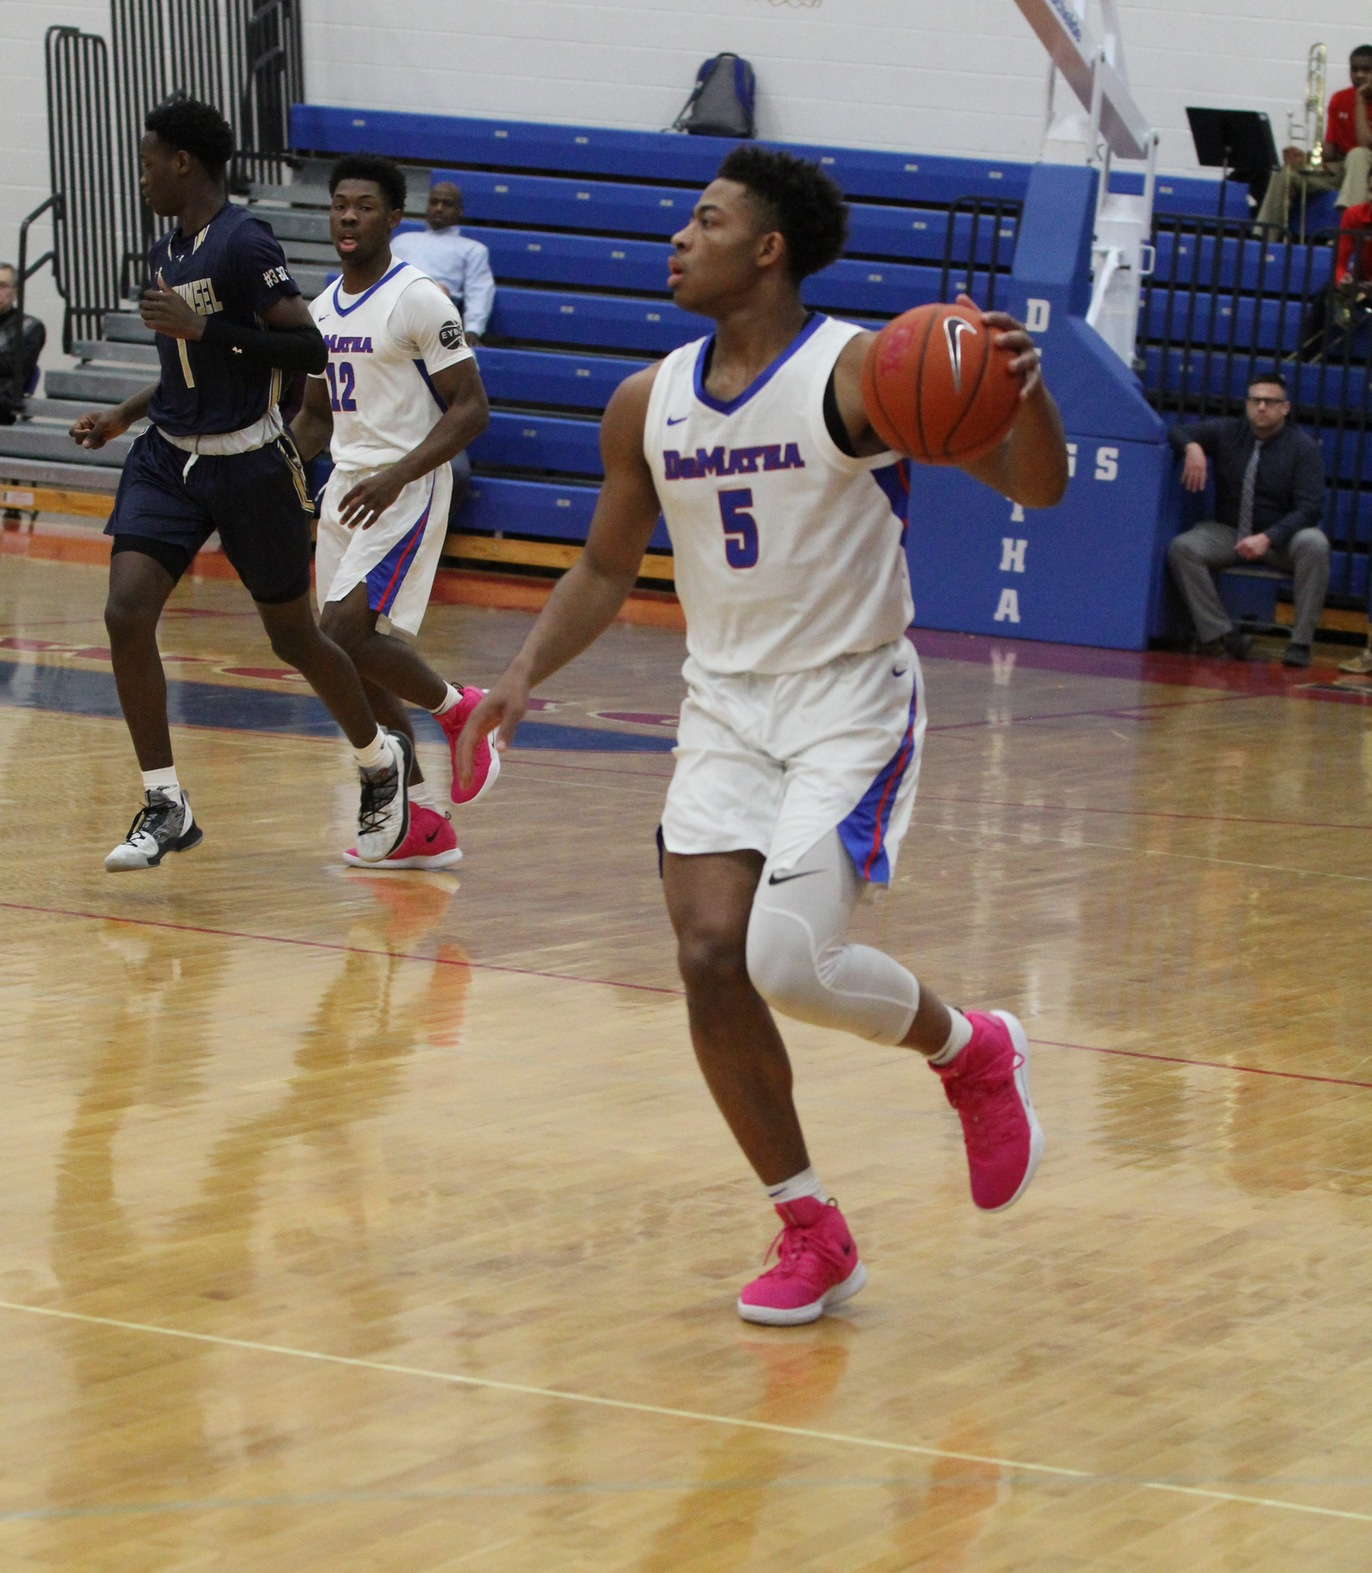 With the win in the Alhambra Championship game, DeMatha Senior Justin Moore (#5) set the program's record for varsity wins with 123.